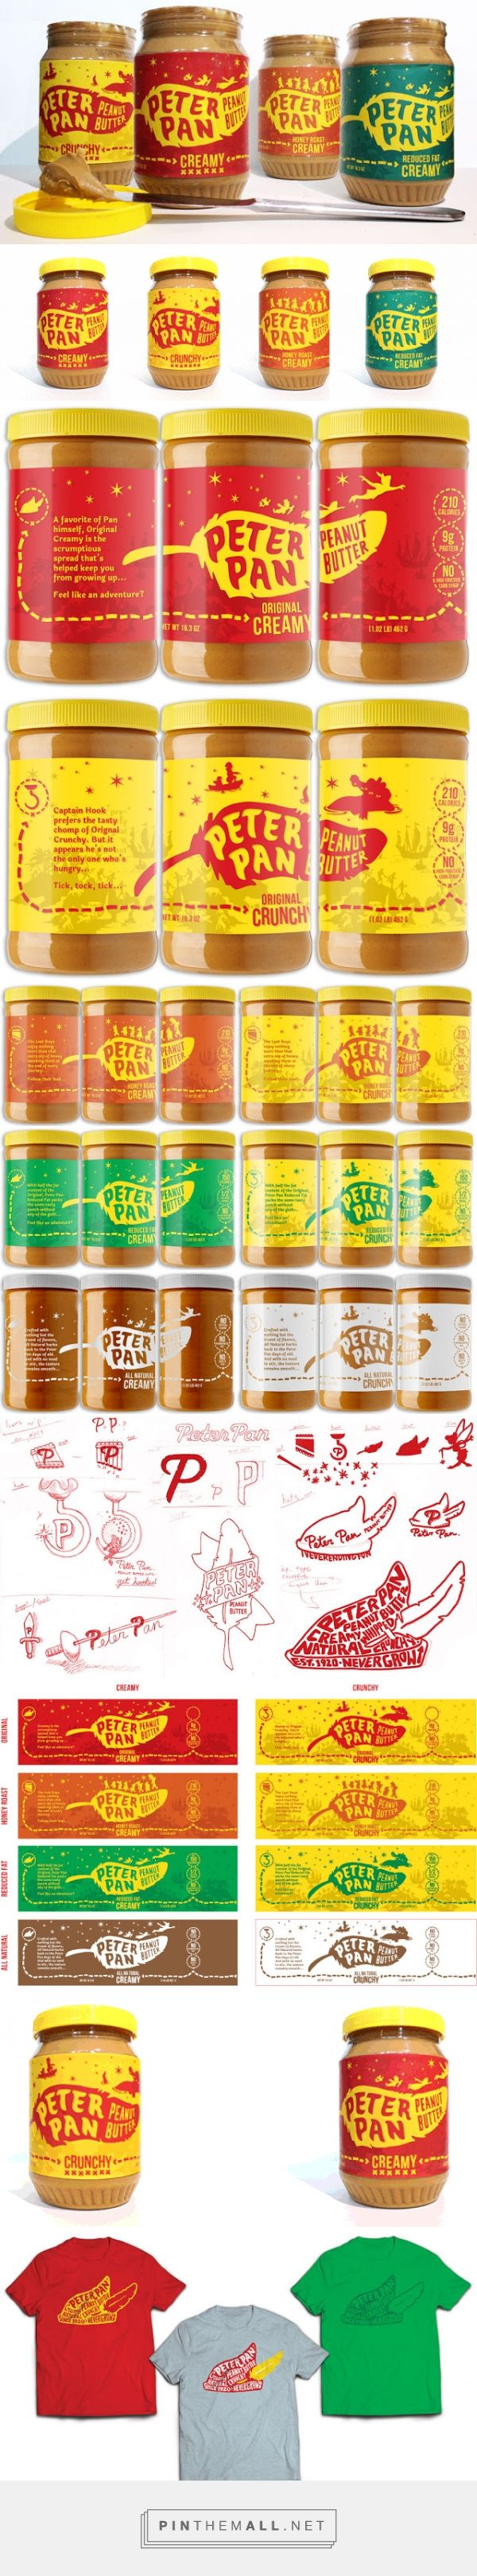 Peter Pan Peanut Butter (Student Project) - Packaging of the World - Creative Package Design Gallery - http://www.packagingoftheworld.com/2016/02/peter-pan-peanut-butter-student-project.html